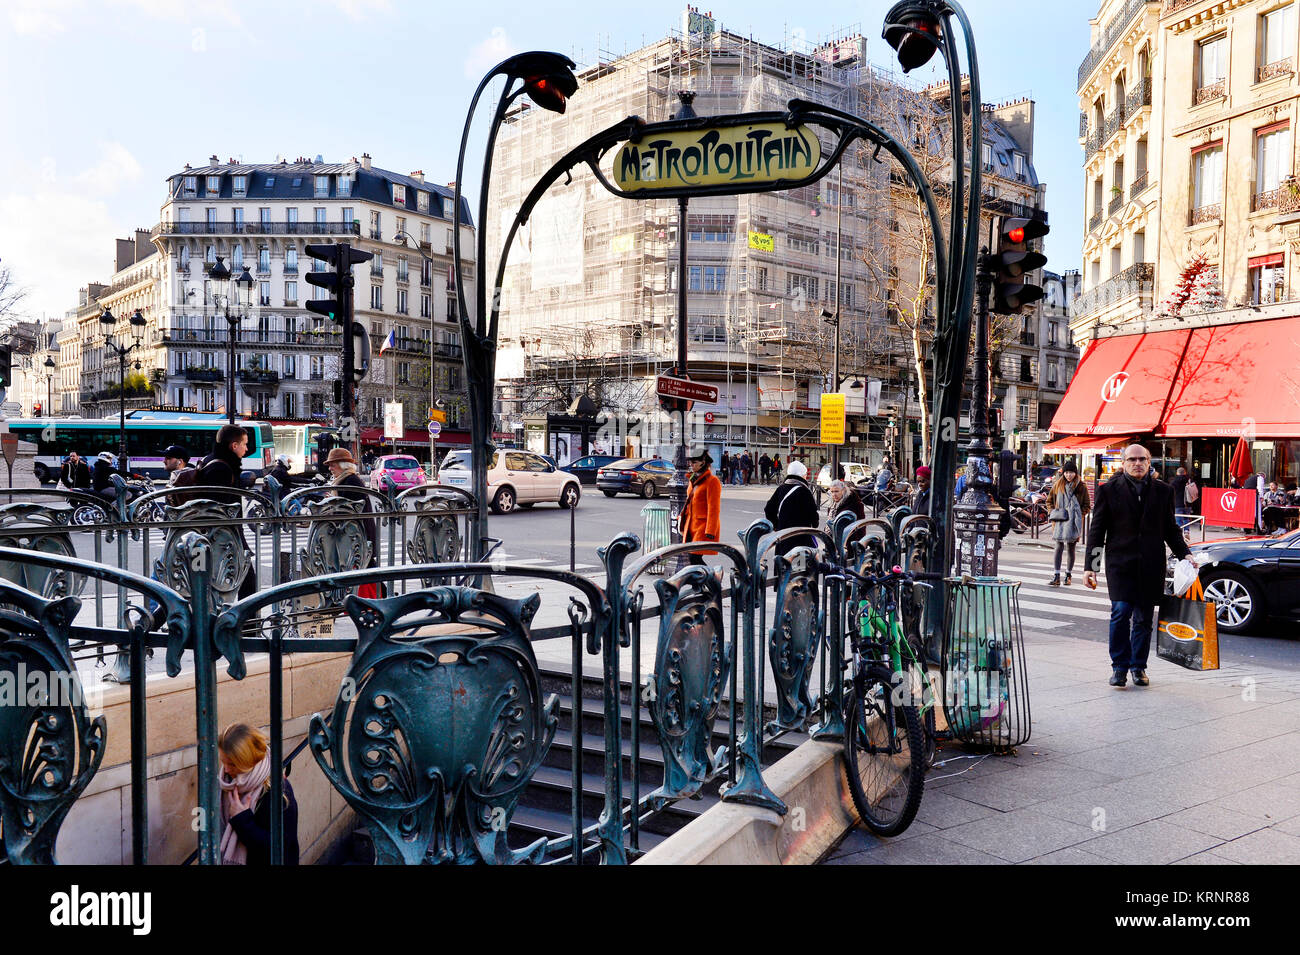 Place De Clichy Stock Photos & Place De Clichy Stock Images - Alamy